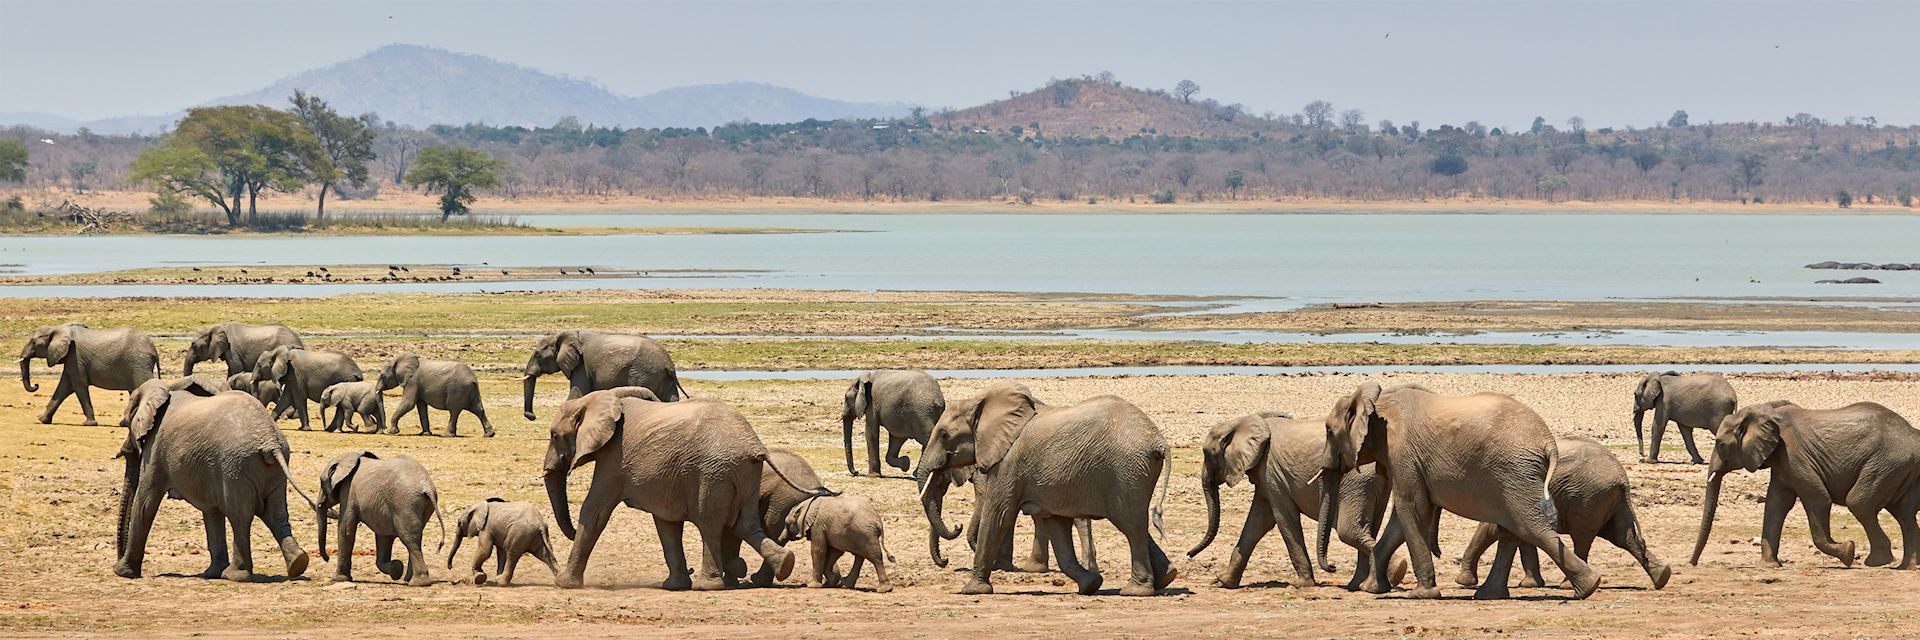 Herd of elephants, Vwaza Marsh